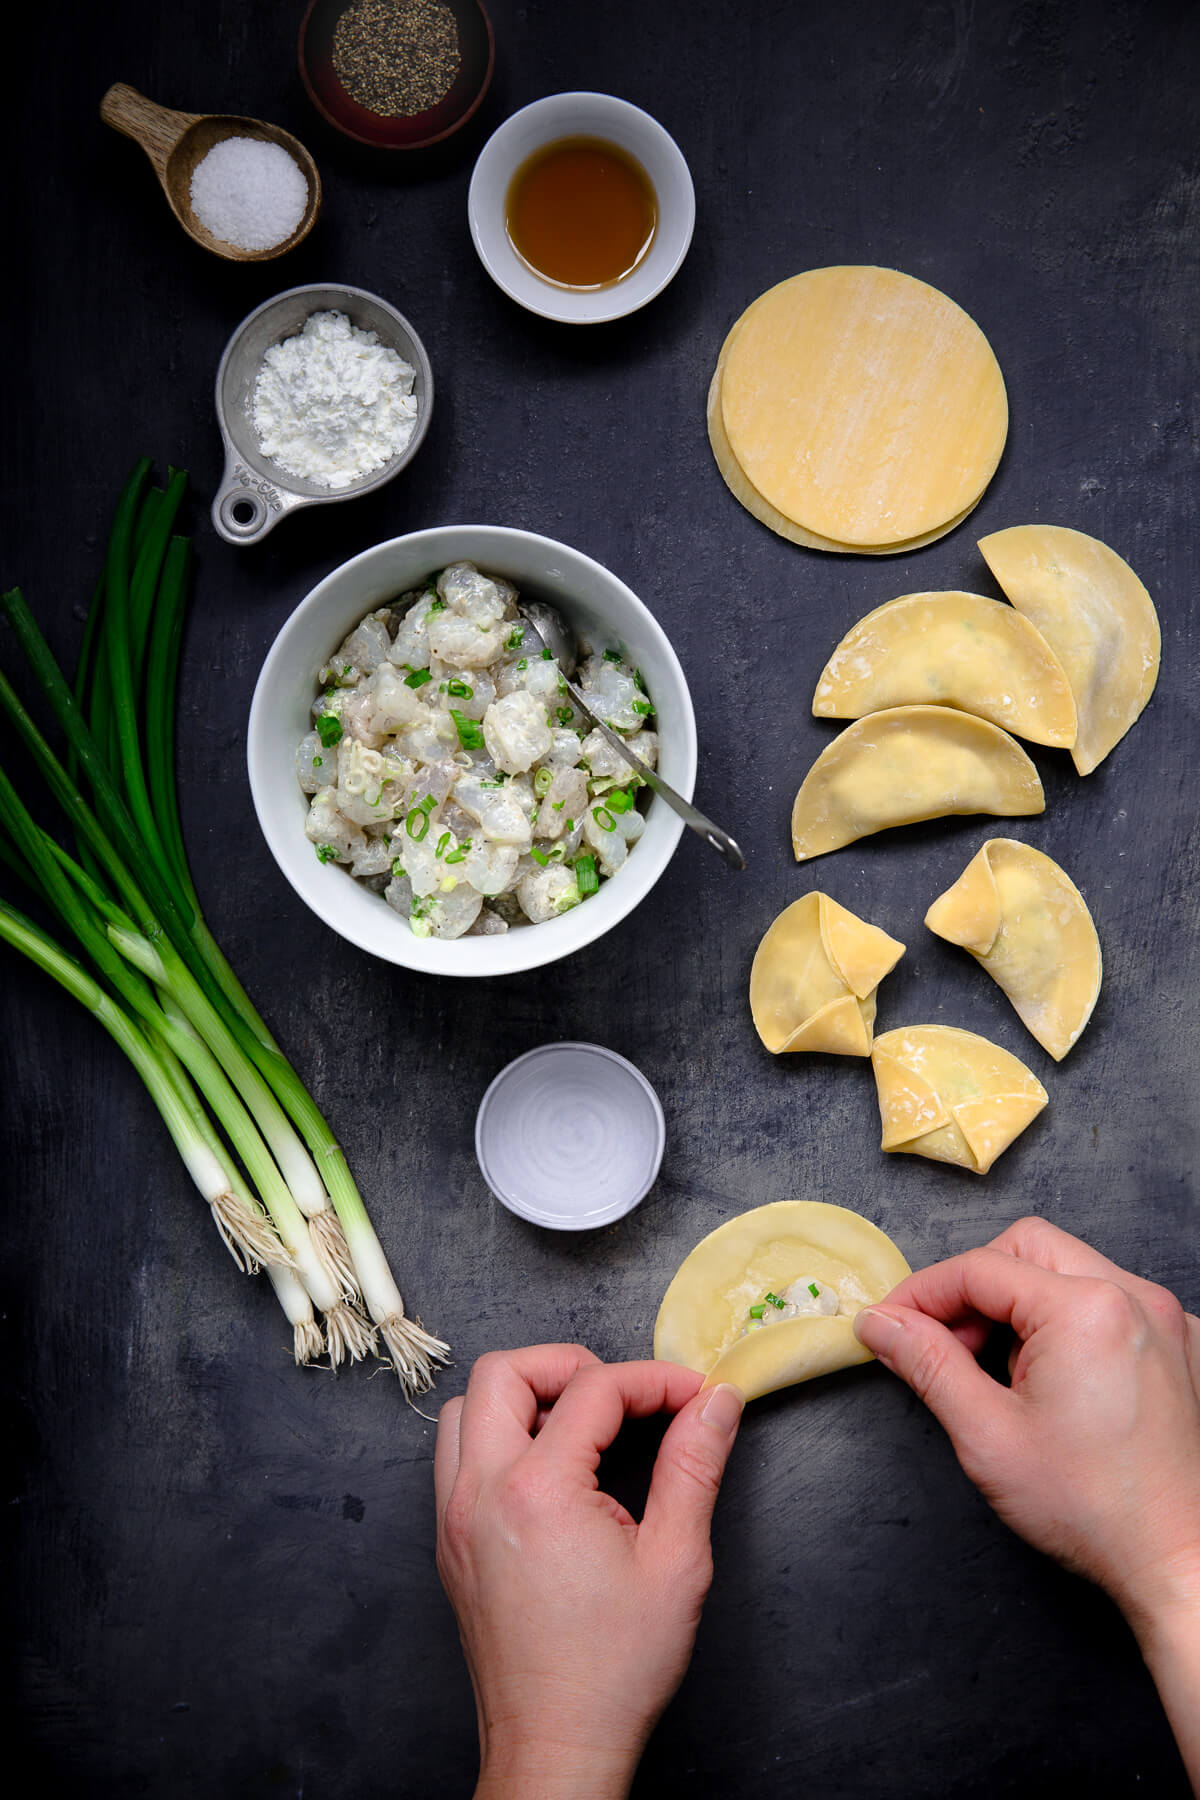 Overhead view showing someone making some shrimp dumplings for soup.